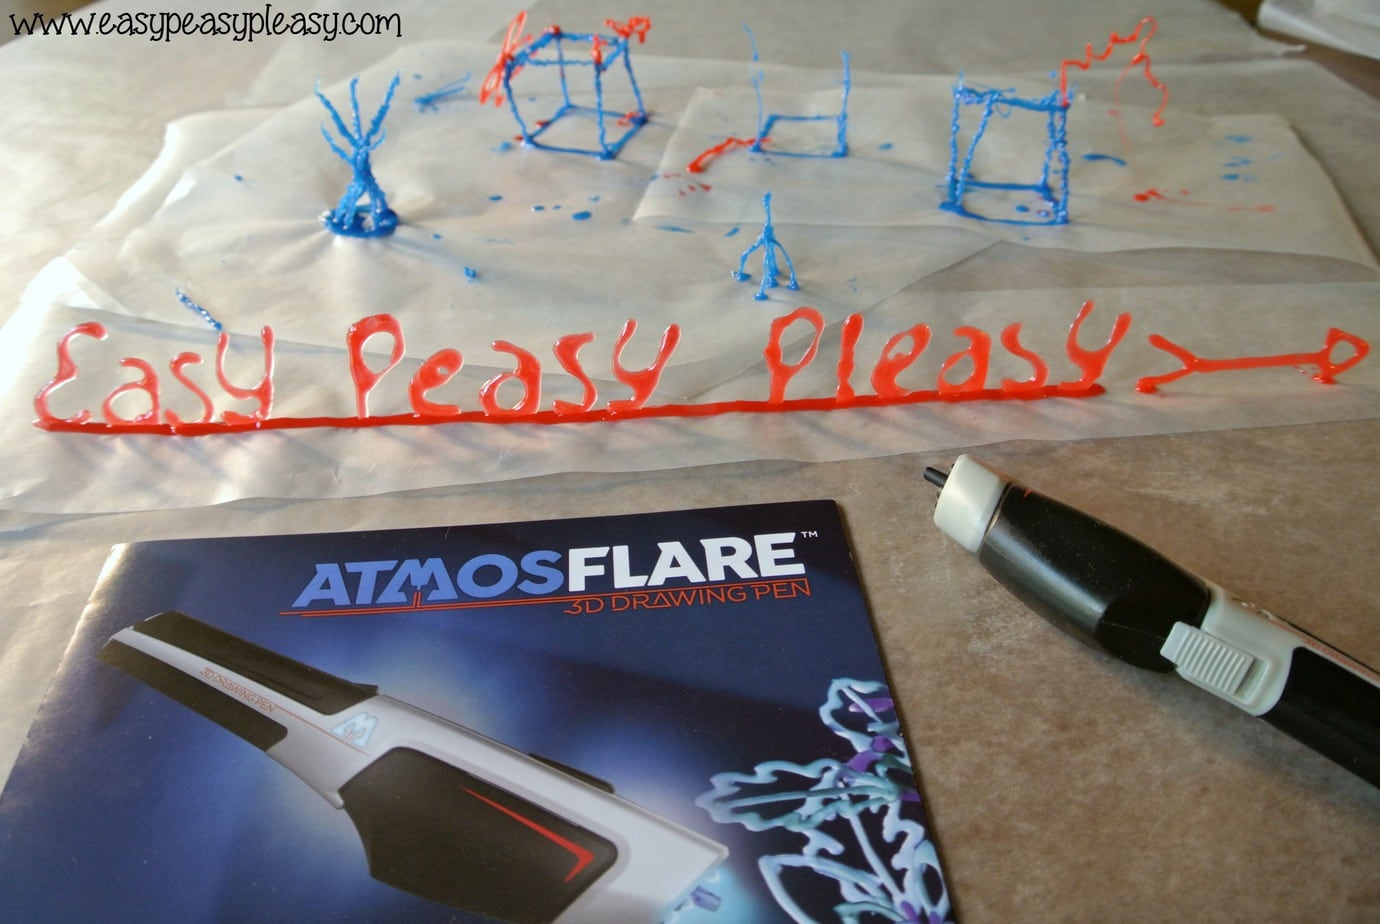 (AD) Cut down on TV time and get the kids to use their imagination with the AtmosFlare 3D Pen.